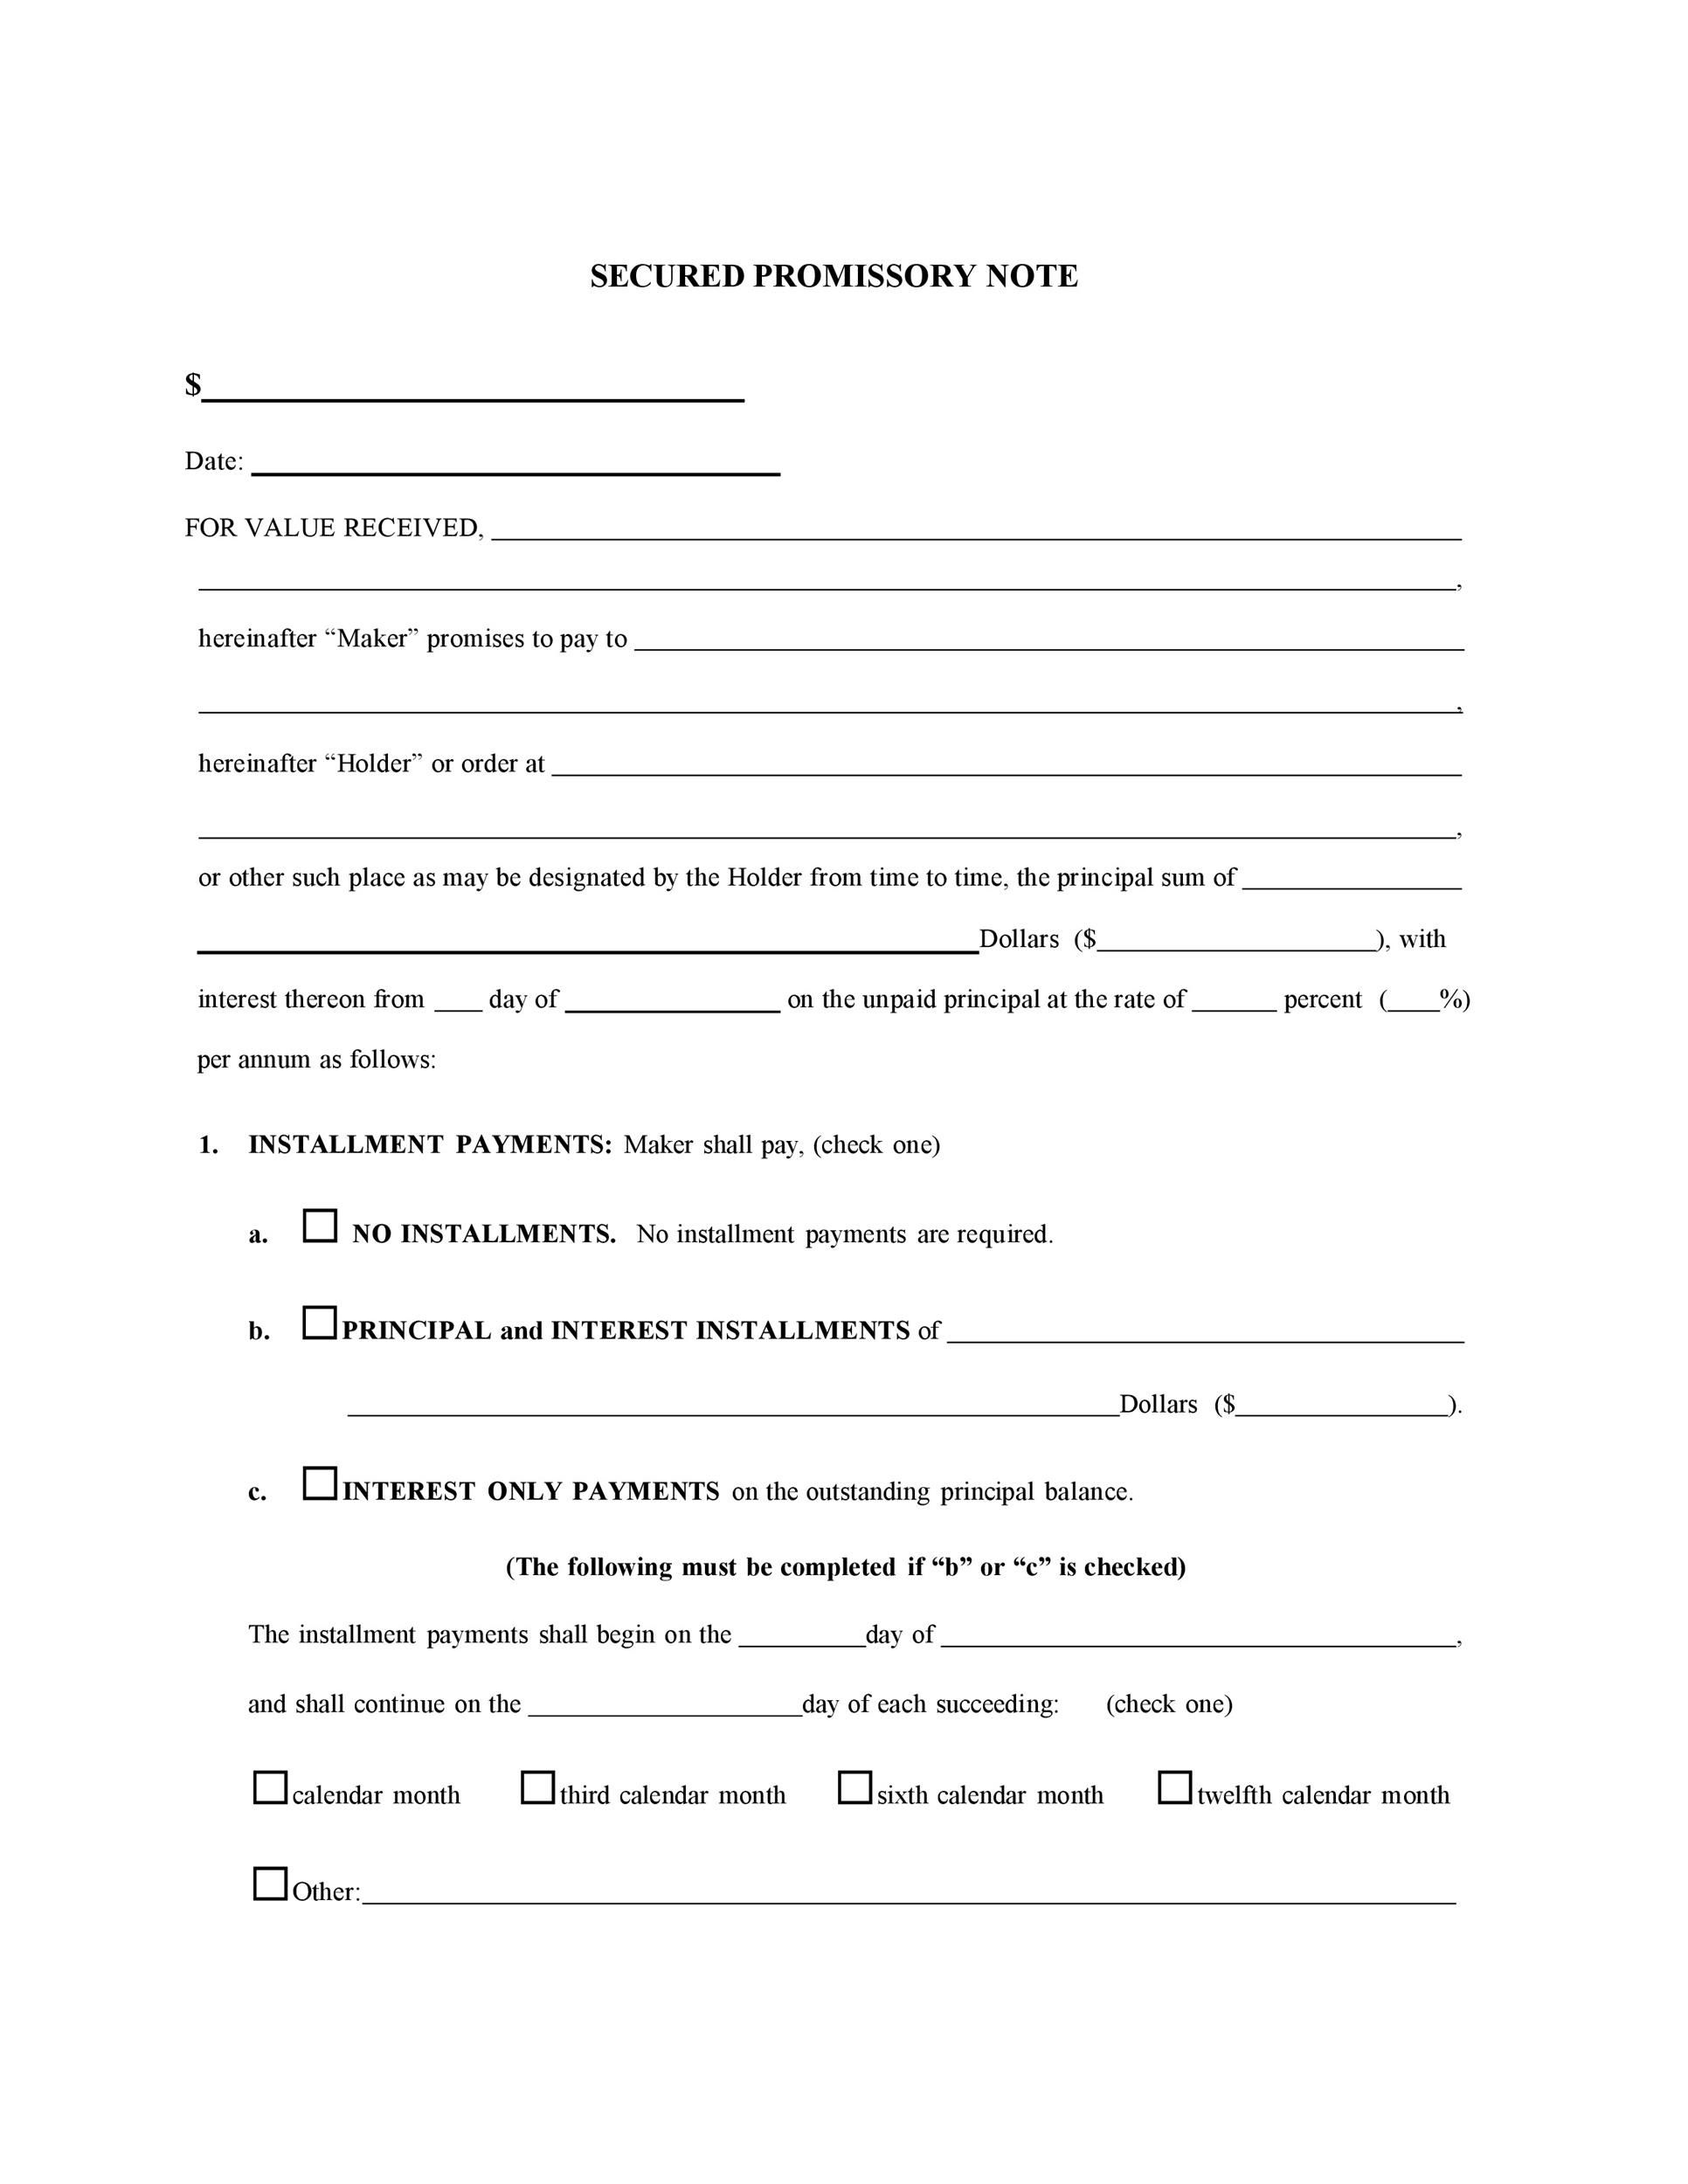 008 Fascinating Promissory Note Template Free Photo  Printable Blank Form Download Pdf CanadaFull